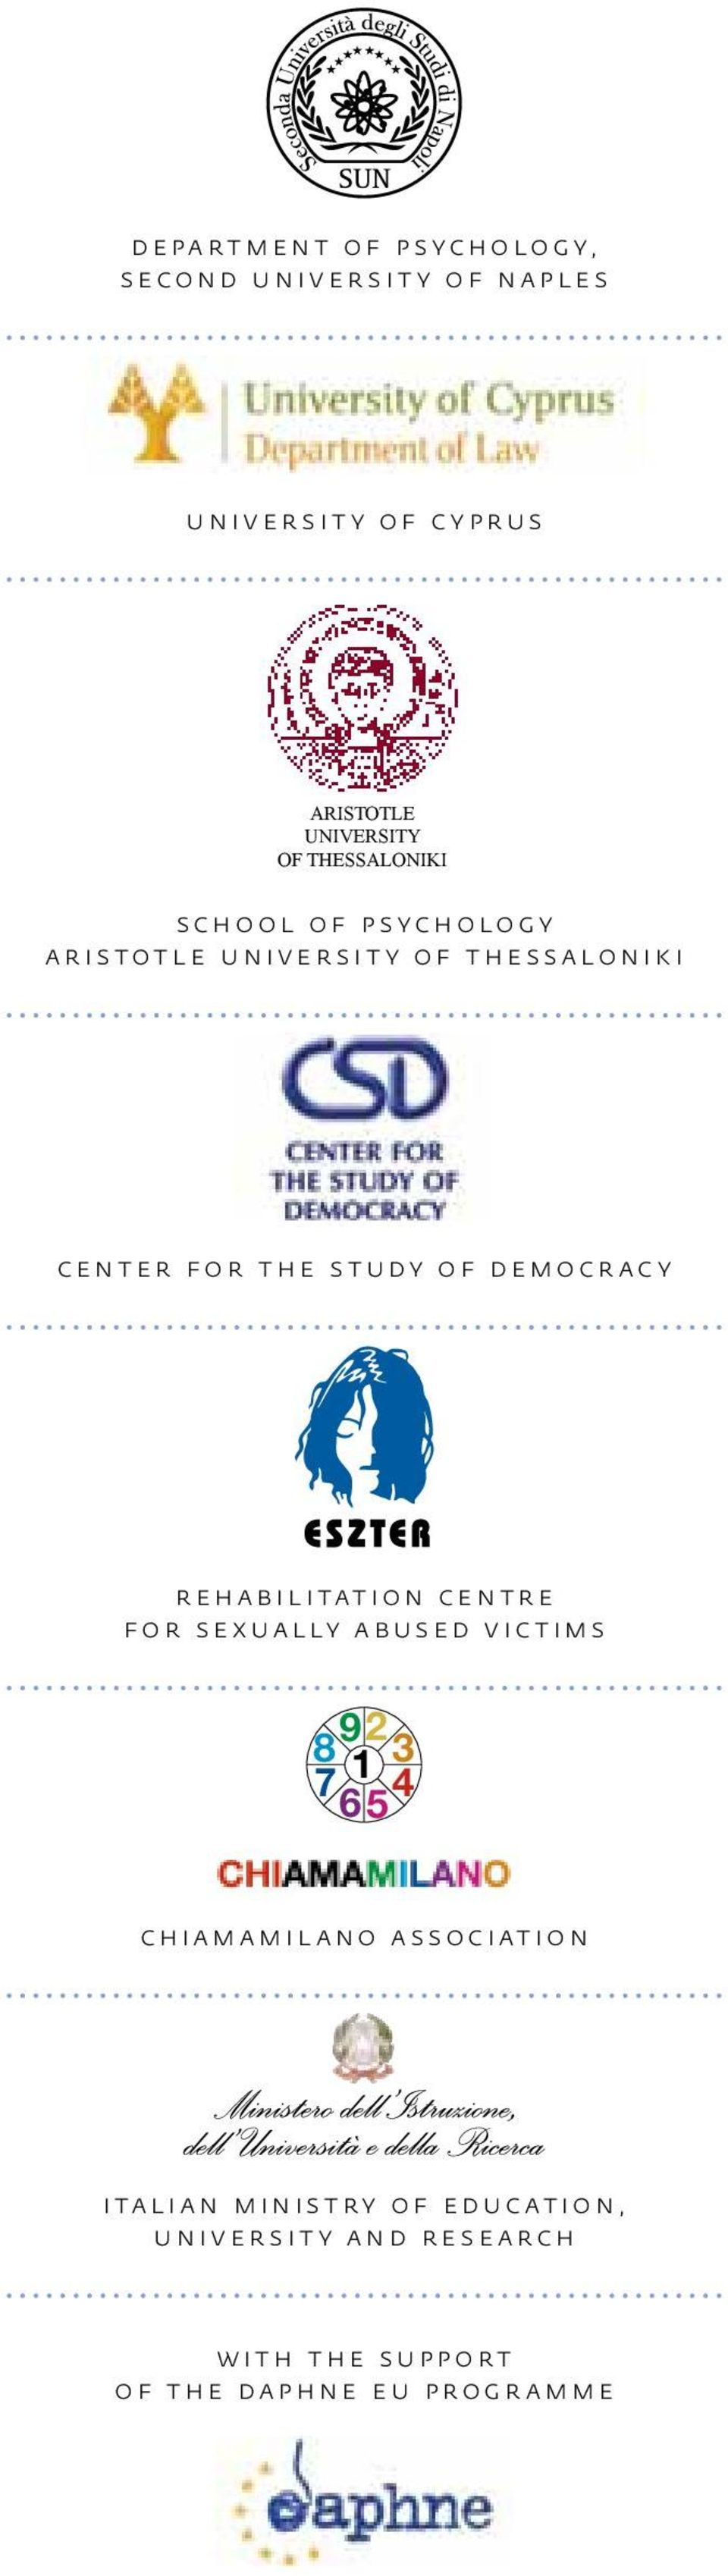 democracy rehabilitation centre for sexually abused victims 2 8 9 34 7 1 65 chiamamilano